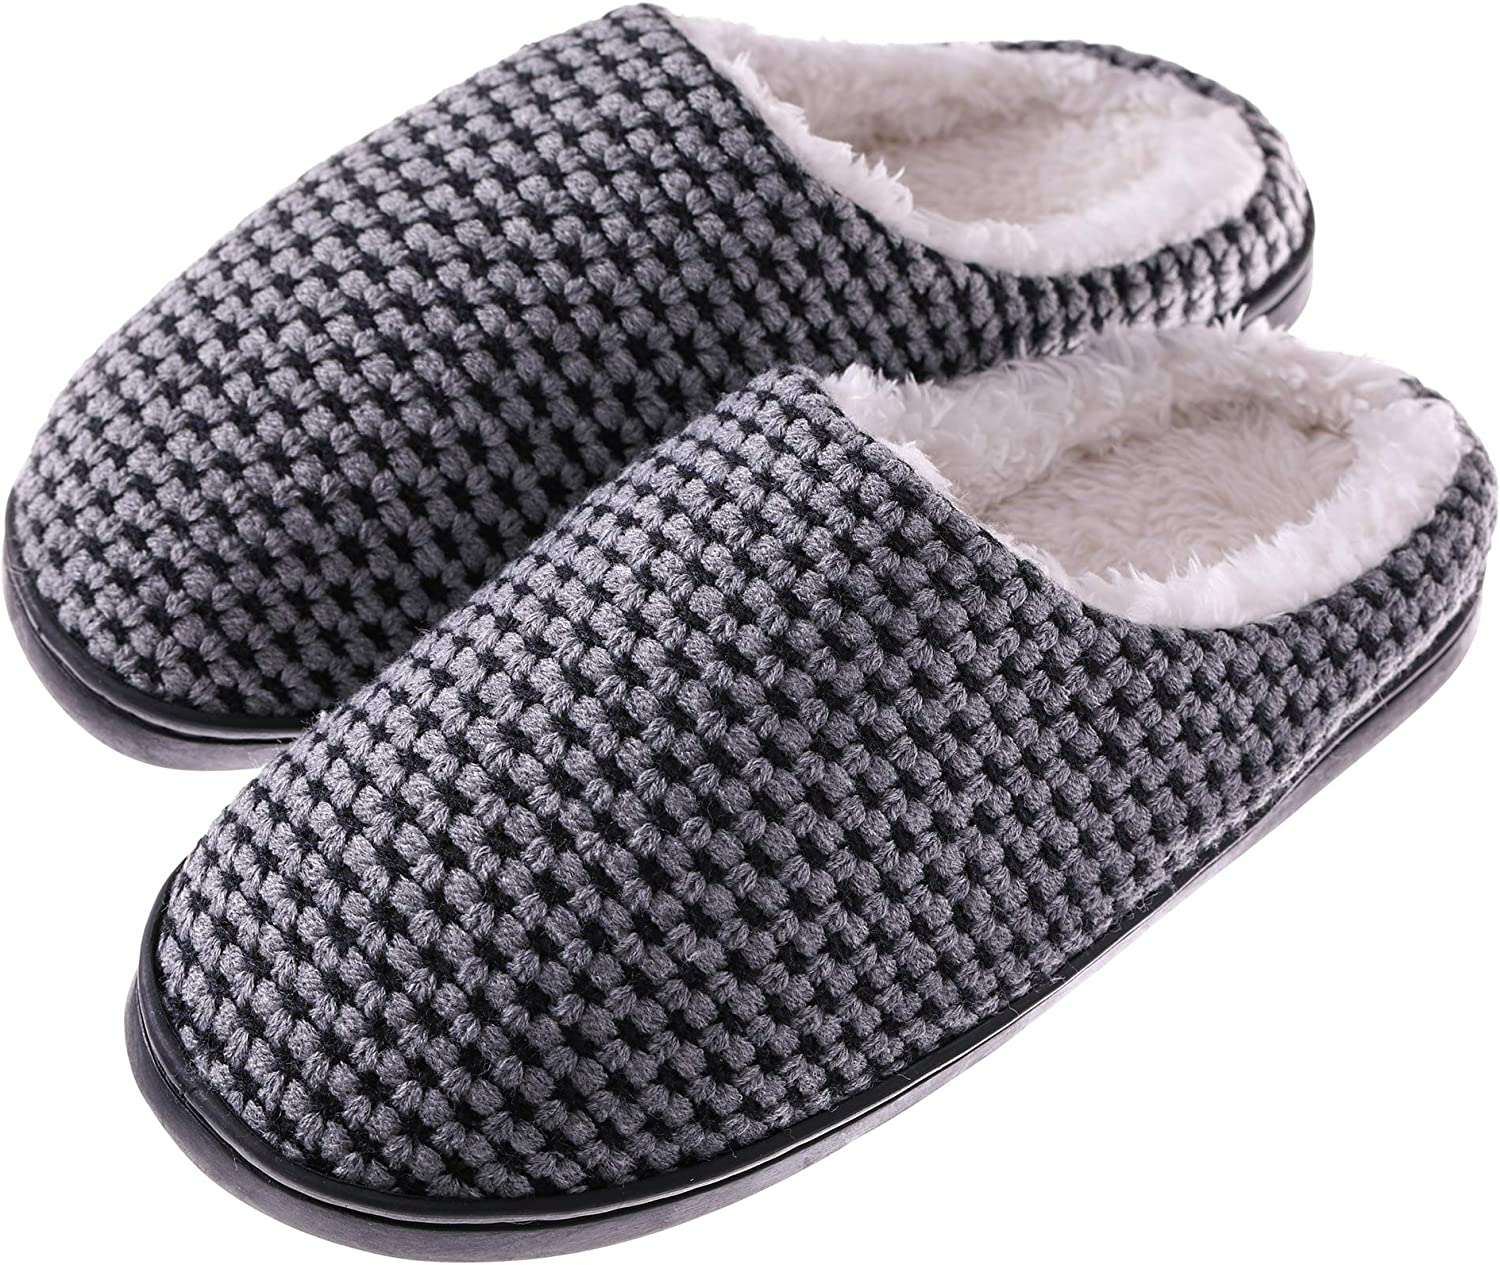 TRUEHAN Womens Memory Foam House Slippers Warm Soft Sole Anti-Slip Slippers Indoor shoes